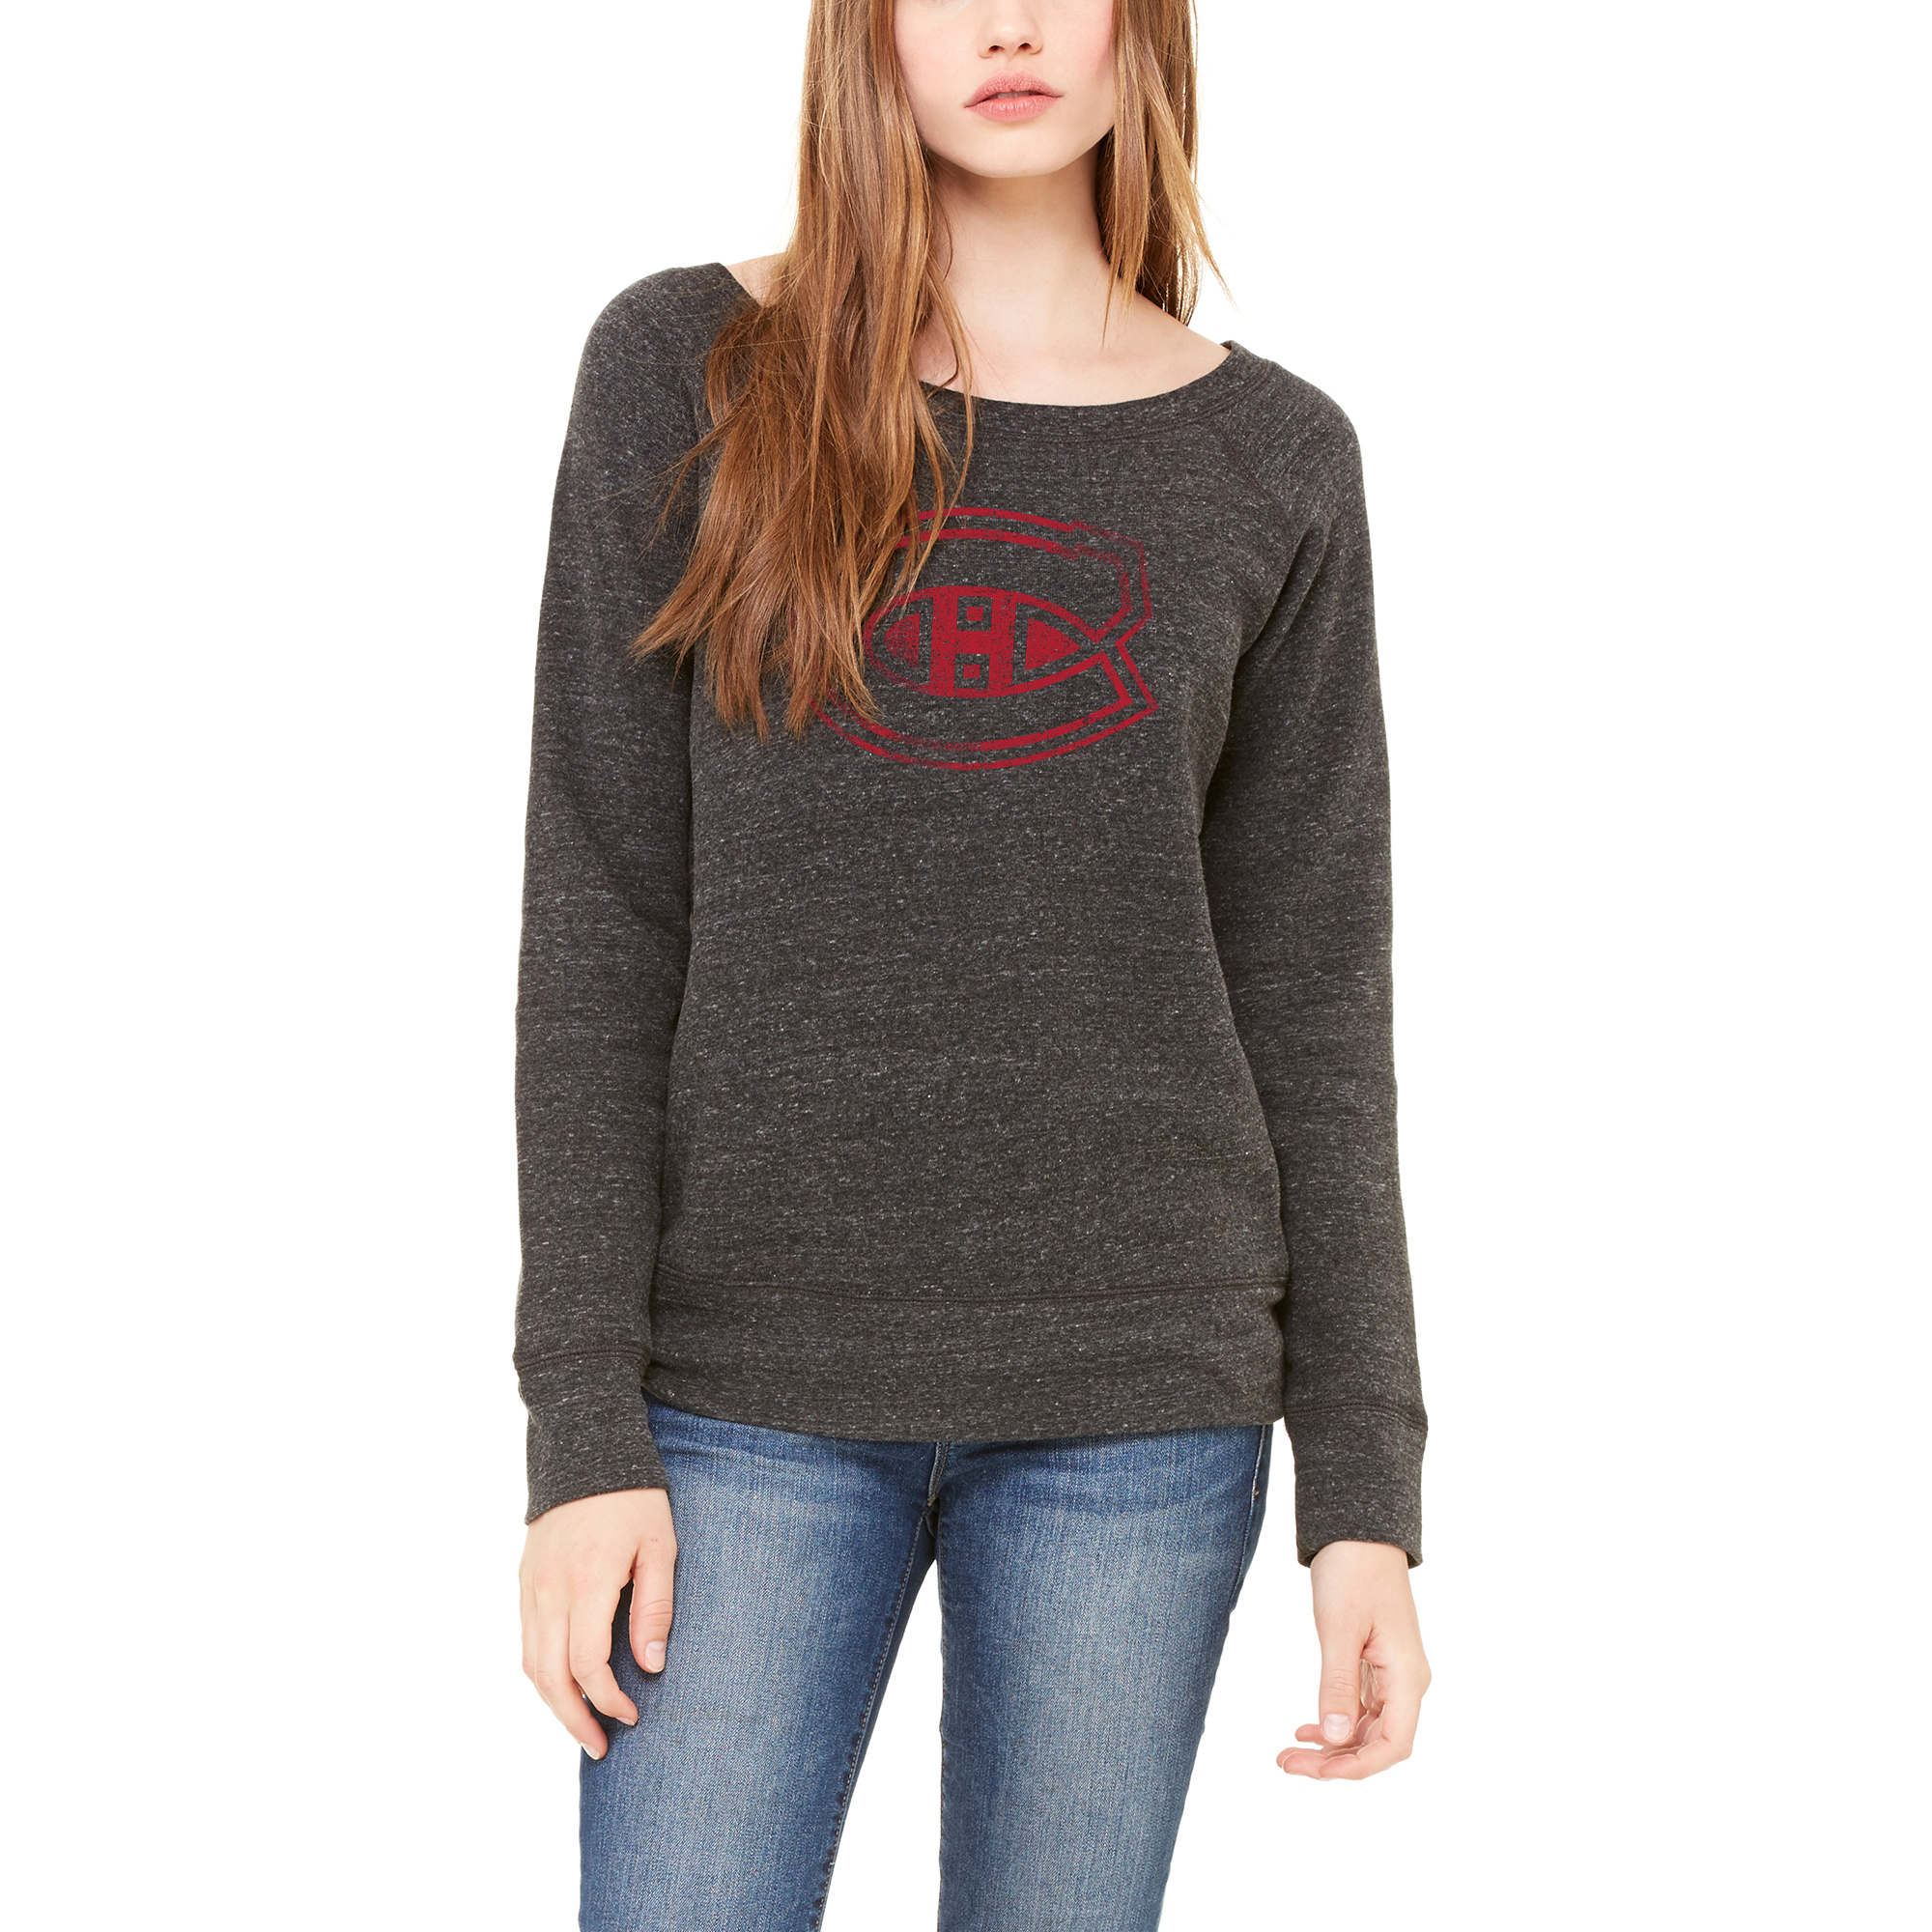 Montreal Canadiens Let Loose by RNL Women's Game Day Wide Neck Pullover Sweatshirt - Heathered Charcoal